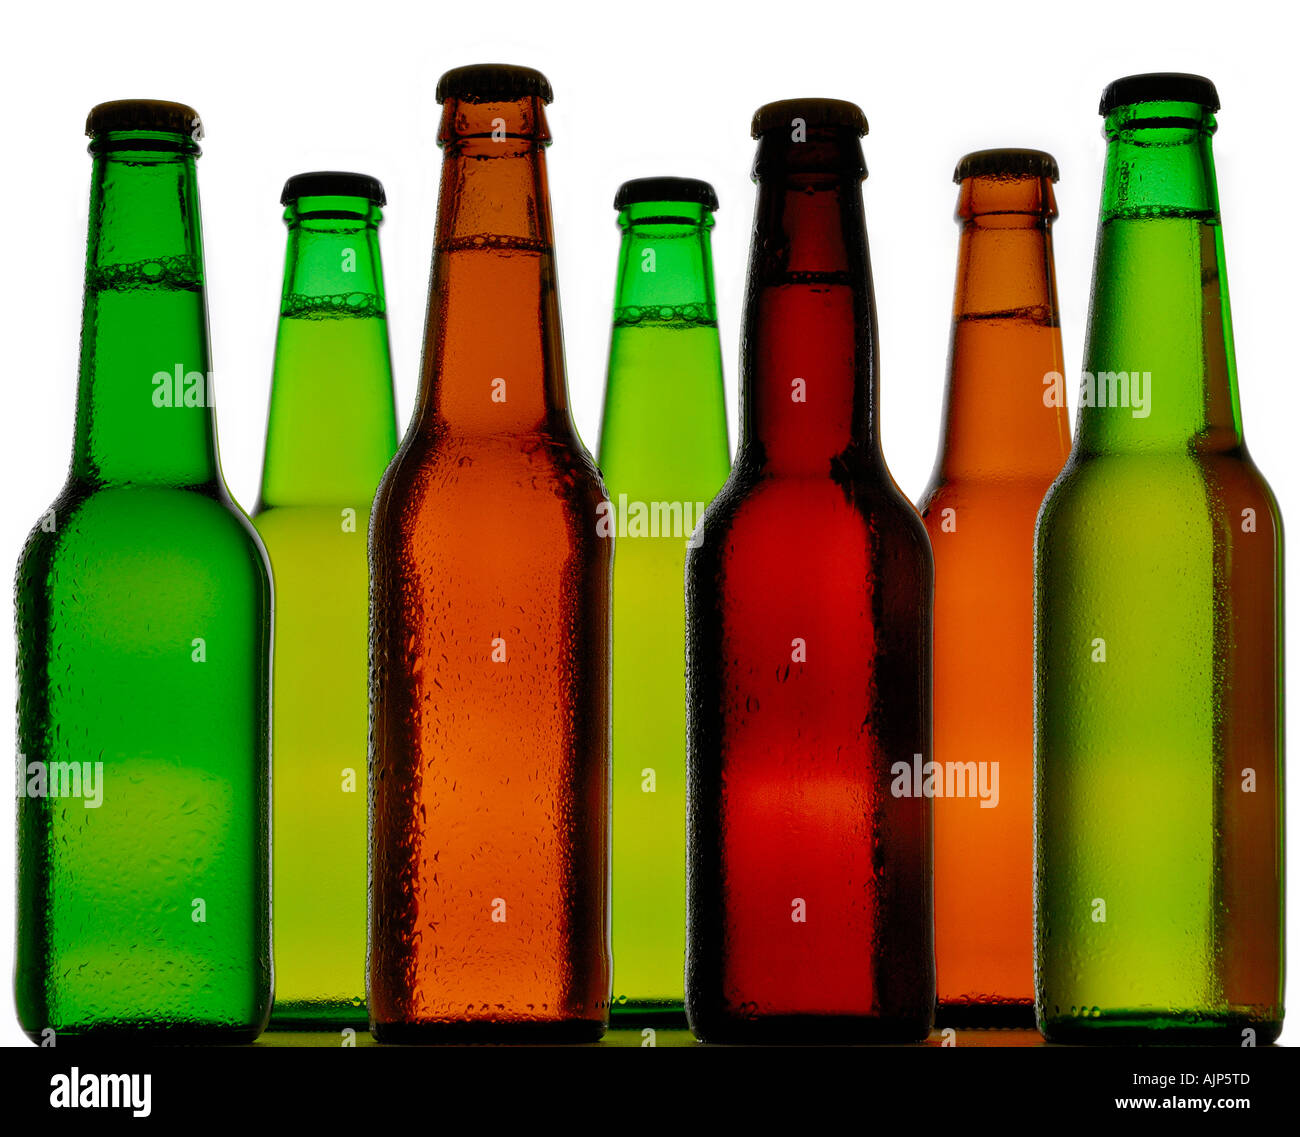 BEER COLORFUL BOTTLES OF COLD BEER SILHOUETTED ON WHITE BACKGROUND Stock Photo